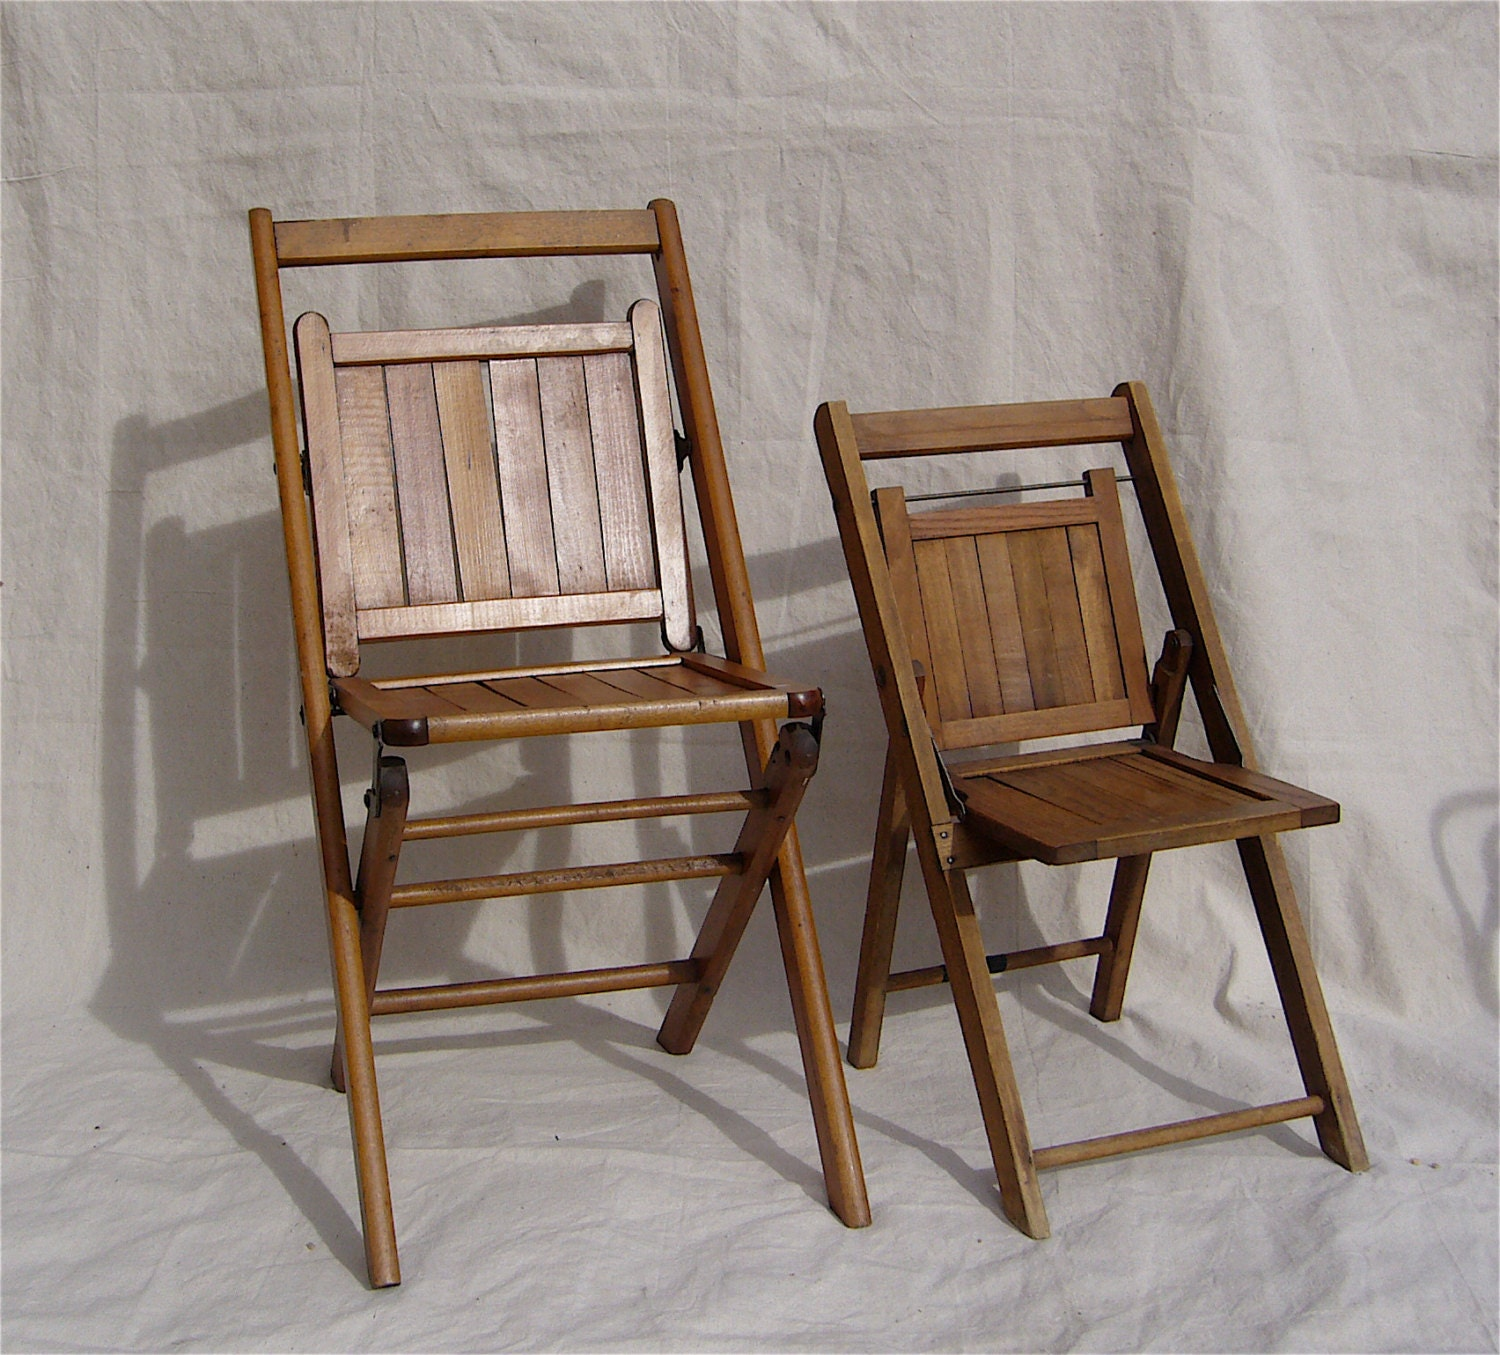 Antique Wooden Chairs ~ Antique folding chairs wood slat pair adult child sized c